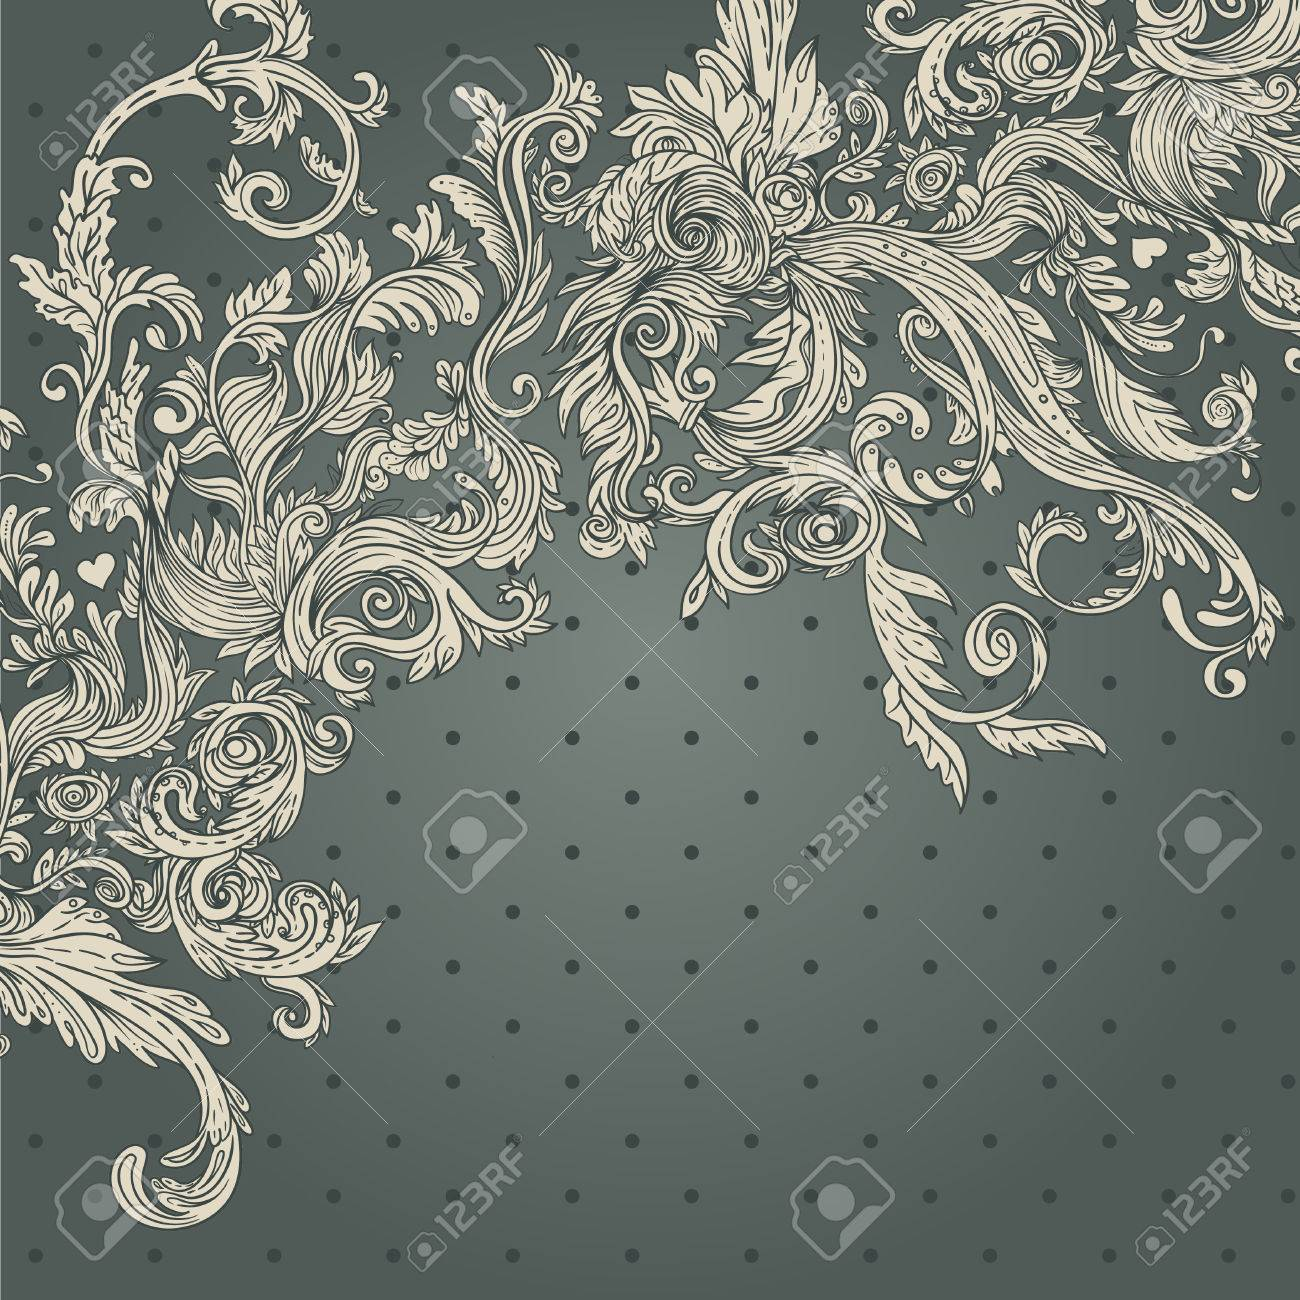 Vintage background ornate baroque pattern vector illustration stock - Vintage Background Ornate Baroque Pattern Vector Illustration Stock Vector 33591865